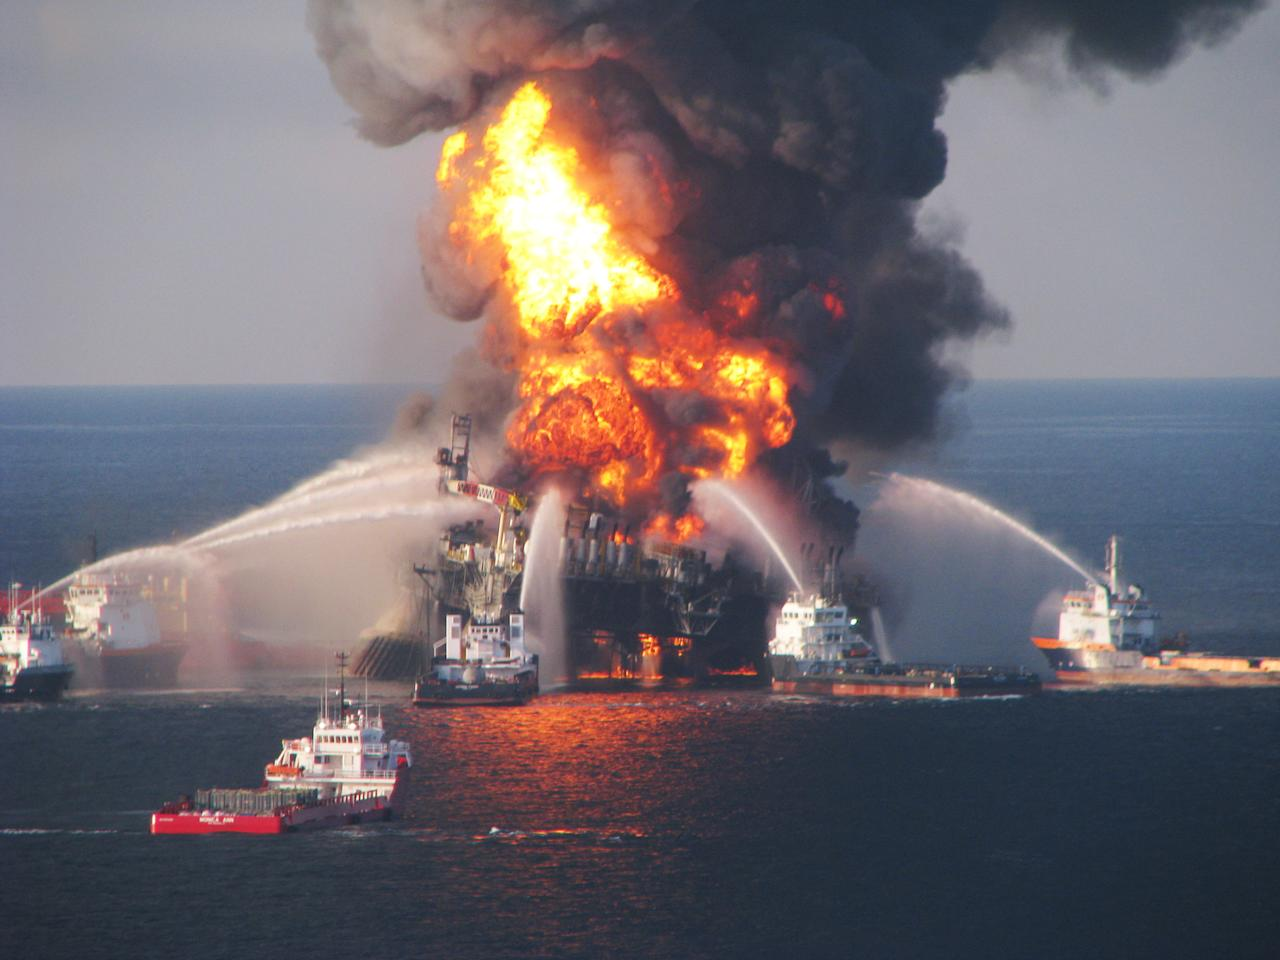 "Only once before had a news story taken the No. 1 slot in Top Searches on Yahoo — namely, the death of Michael Jackson. On April 20, 2010, the Deepwater Horizon oil rig exploded, killing 11. As we <a target=""_blank"" href=""http://2010.yearinreview.yahoo.com/2010/us_top_10_searches/#Top%2010%20Searches"">noted</a>, ""The gushing crude took 86 days to cap. The live feed from the  ocean floor became must-watch viewing, as massive online scrutiny  monitored best (and not so best) efforts to kill the well and stop the  worst spill in marine history."" <ol class=""yom-list""><li>BP Oil Spill</li><li>World Cup</li><li>Miley Cyrus</li><li>Kim Kardashian</li><li>Lady Gaga</li><li>iPhone</li><li>Megan Fox</li><li>Justin Bieber</li><li>American Idol</li><li>Britney Spears</li></ol>A whopping <a target=""_blank"" href=""http://2010.yearinreview.yahoo.com/2010/blog/13485/shortcuts-to-2010/"">144 articles</a> only skimmed the Search stream in 2010. <a target=""_blank"" href=""http://2010.yearinreview.yahoo.com/2010/us_natural_disasters/#Natural%20Disasters"">Monumental natural disasters</a> included earthquakes in Haiti, Chile and China, floods in Pakistan and Nashville; an Iceland volcano even grounded global air traffic. Yet <a target=""_blank"" href=""http://2010.yearinreview.yahoo.com/2010/us_natural_disasters/#Natural%20Disasters"">tales of heroism</a> amazed us, from the Deepwater Horizon crew, the Chilean miners trapped underground, and the miraculous ""return"" of kidnapped young girl Jaycee Dugard hiding in plain sight, grown up with her two children."